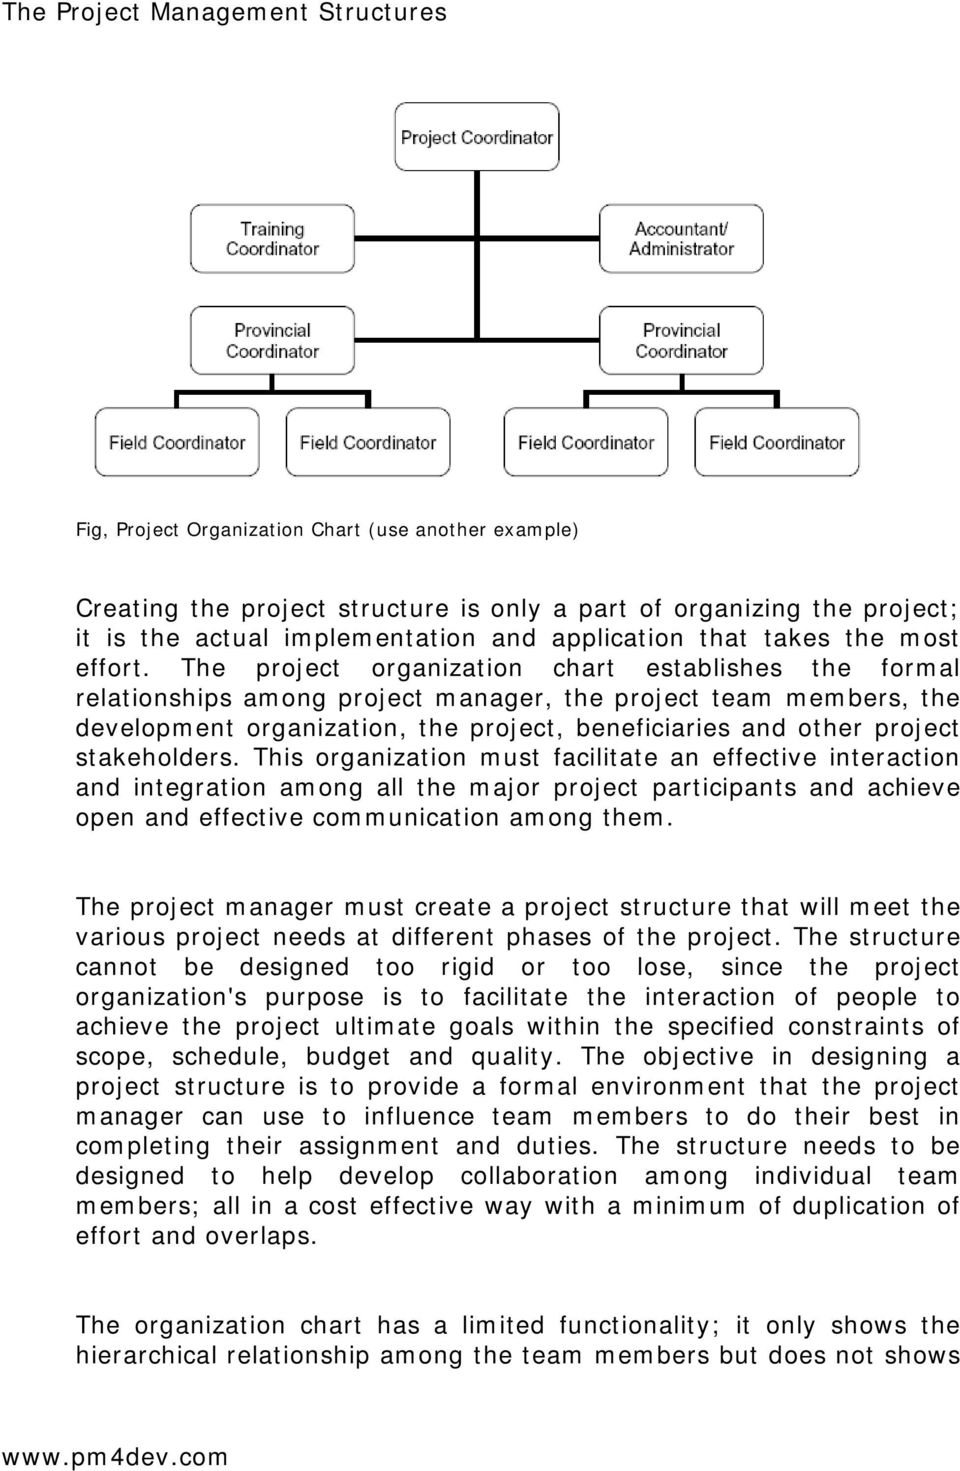 The project organization chart establishes the formal relationships among project manager, the project team members, the development organization, the project, beneficiaries and other project